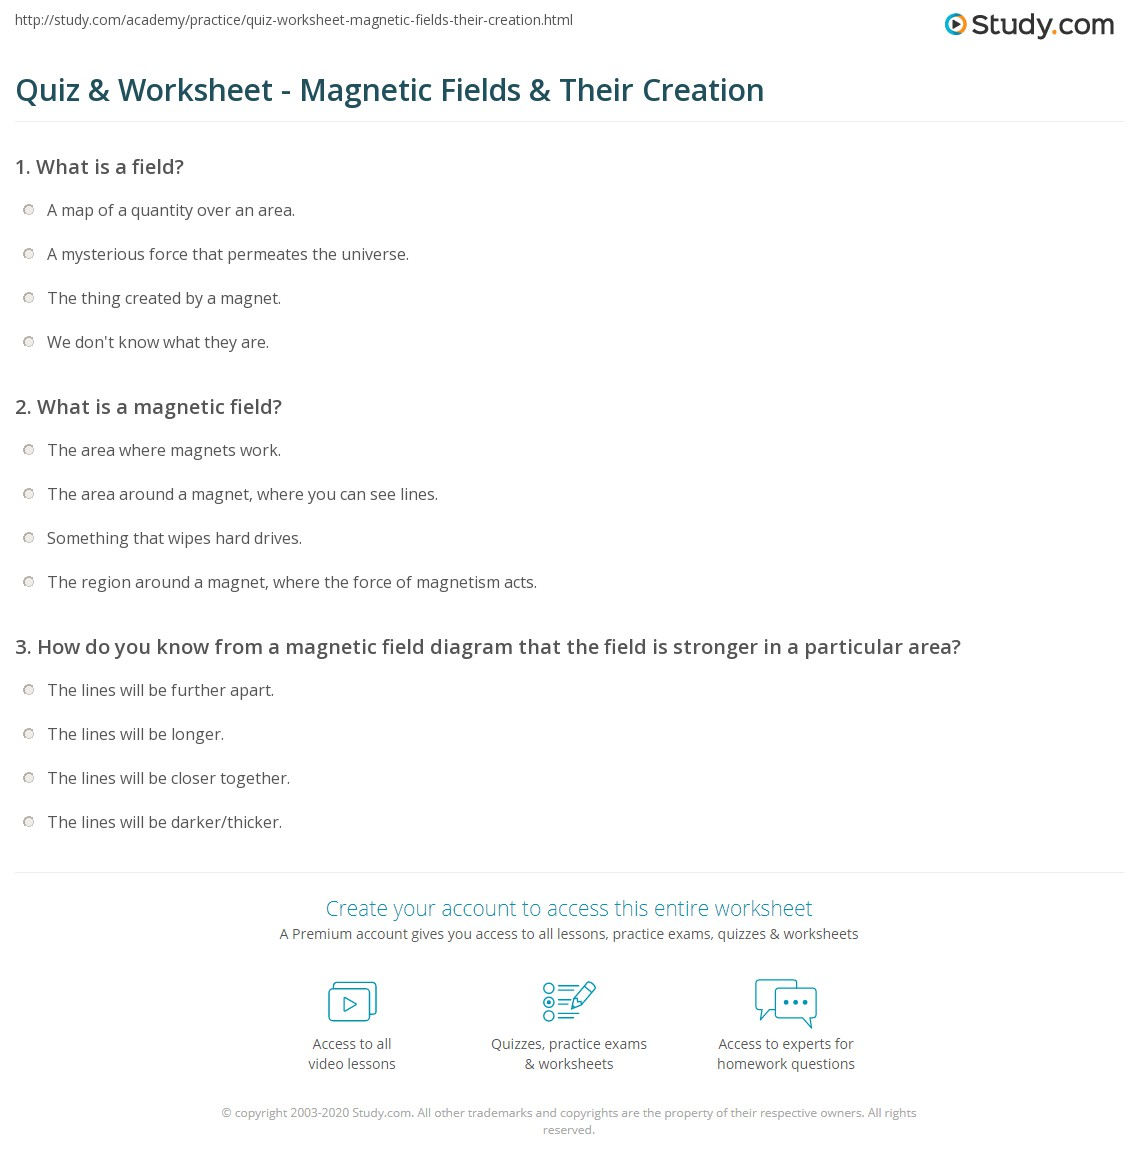 quiz & worksheet - magnetic fields & their creation | study